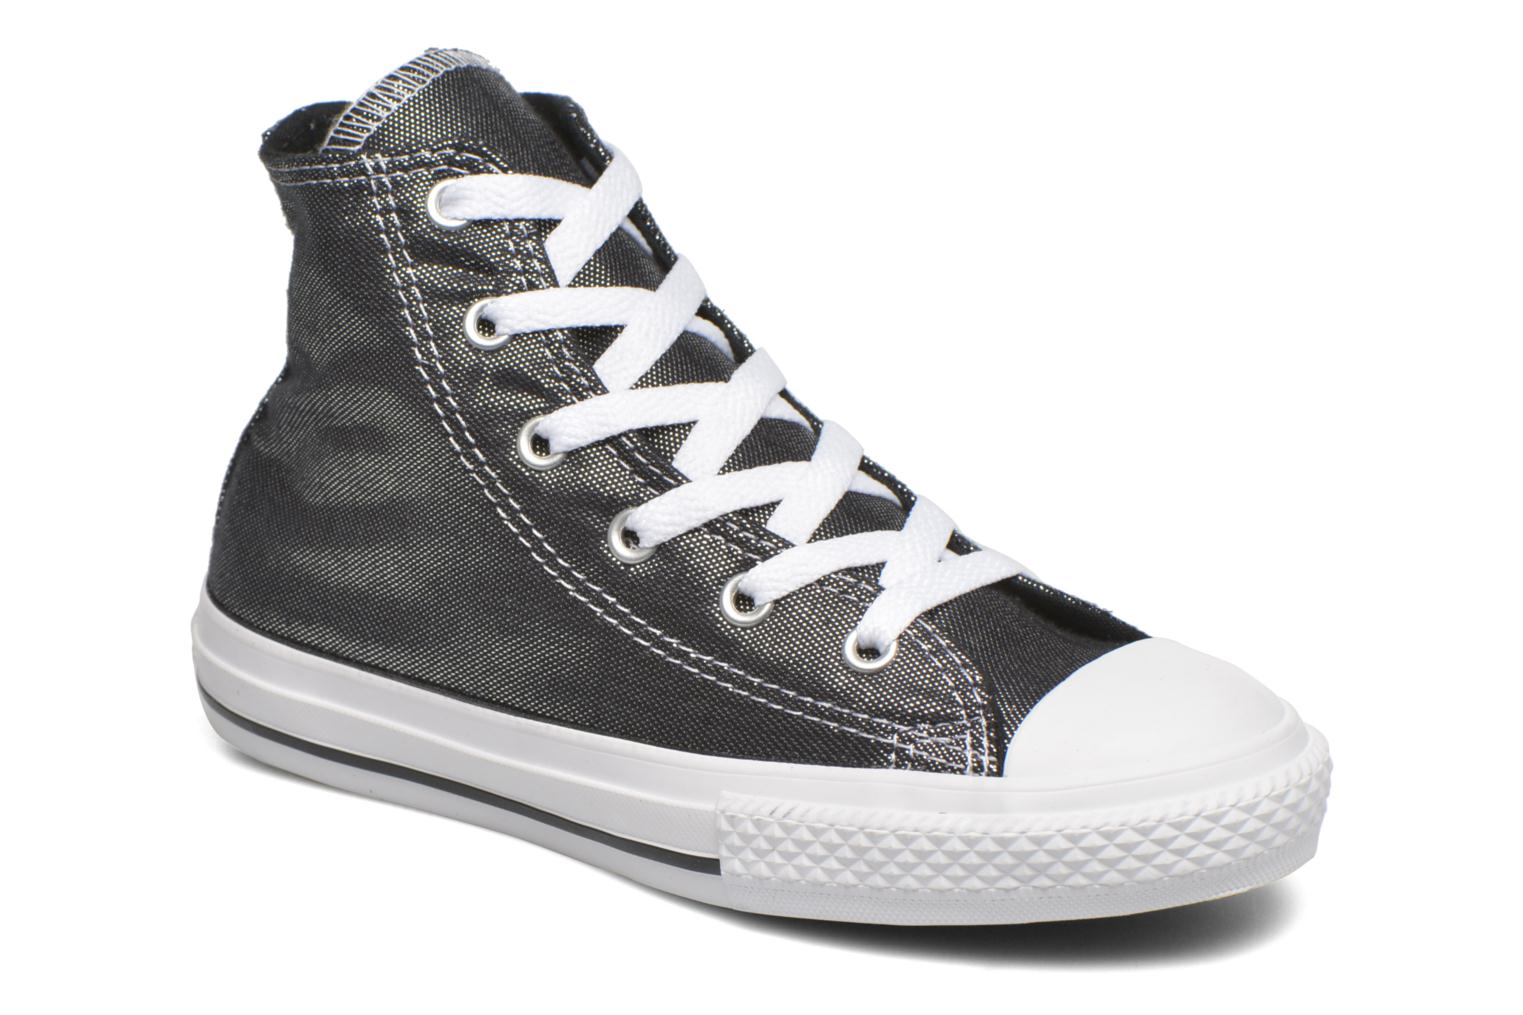 Soar Converse Chuck Taylor All Star Hi (Bleu)